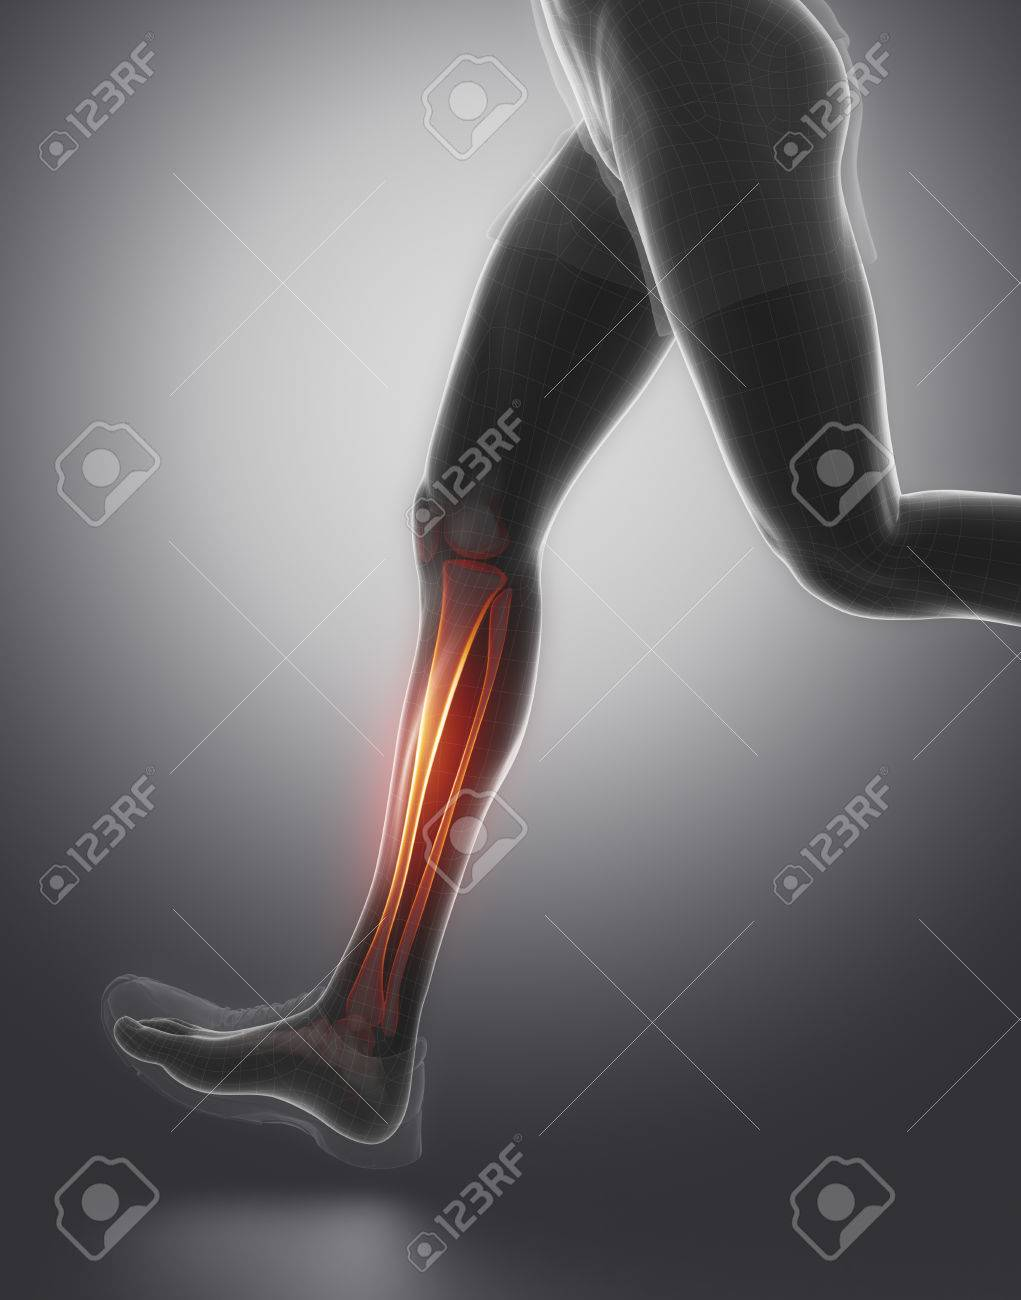 Tibia Fibula Anatomy Stock Photo, Picture And Royalty Free Image ...